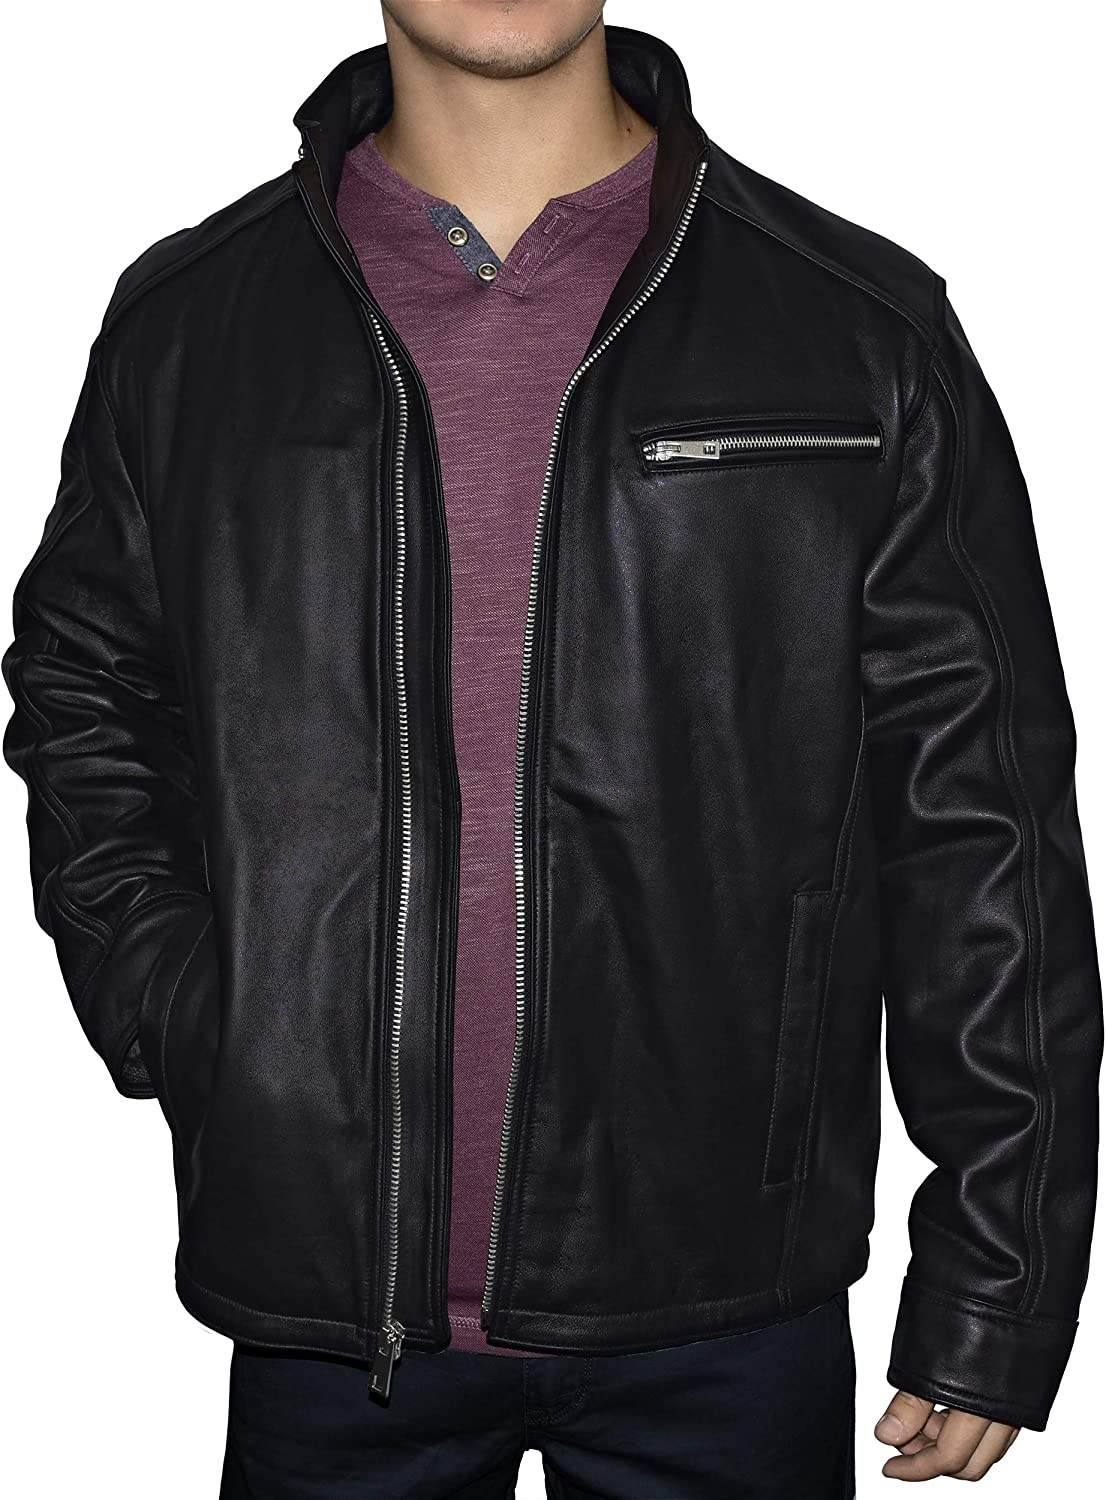 Victory Men's Genuine Leather Quilted Lined Racing Jacket